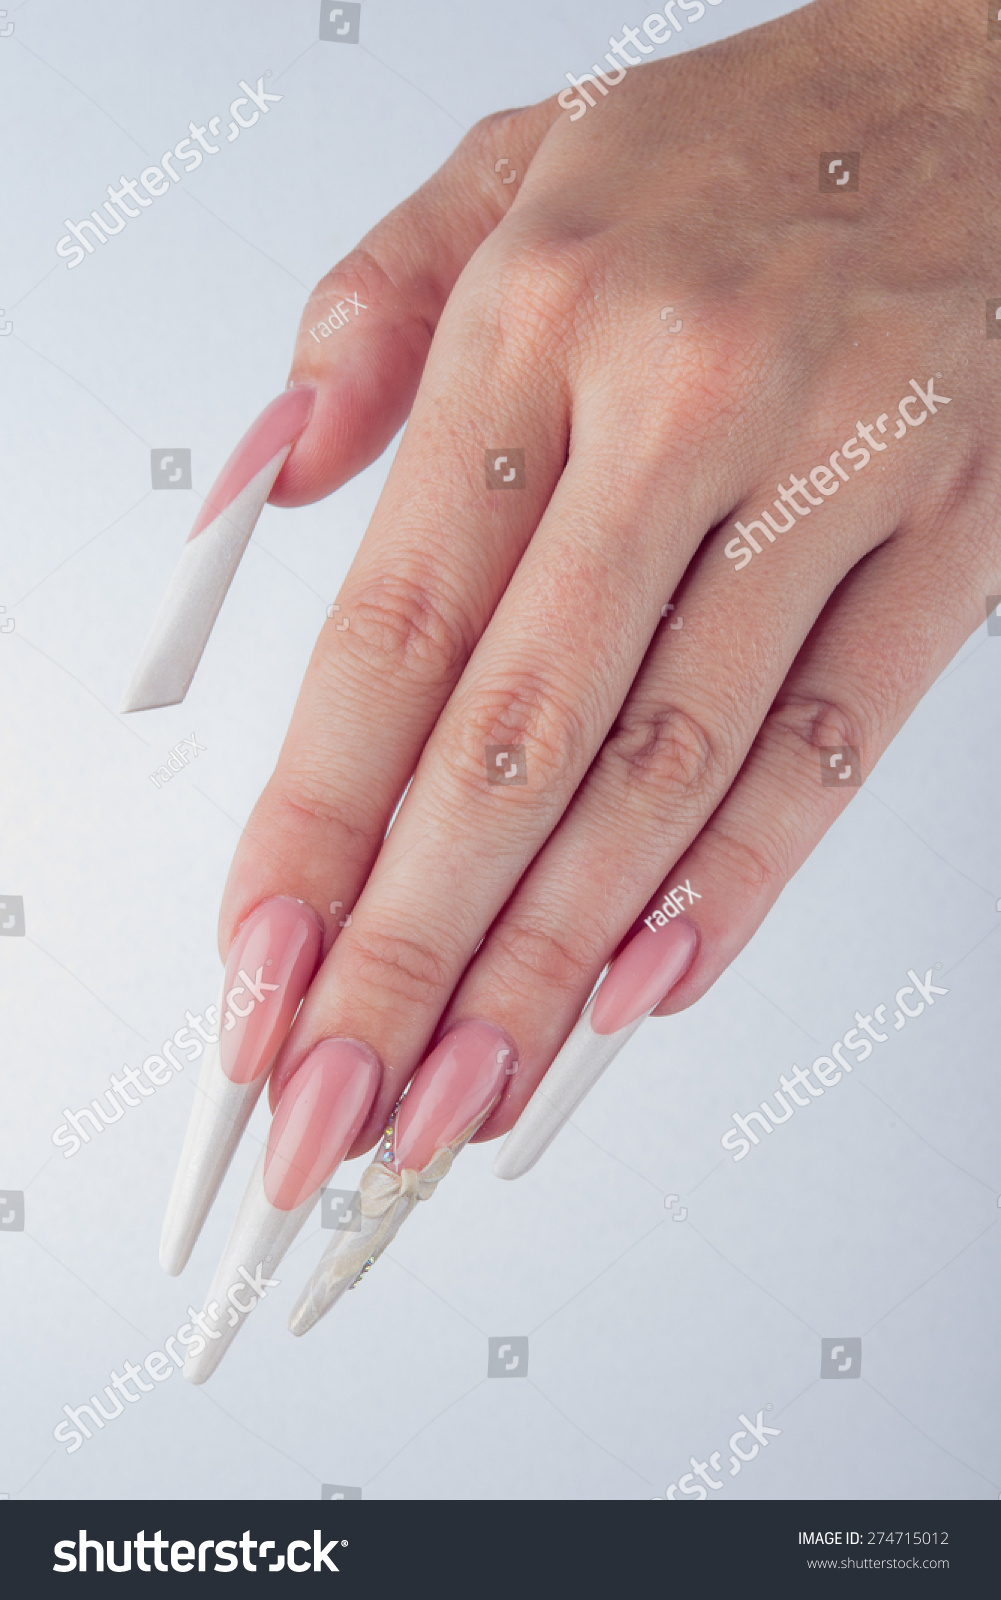 Painted Extreme Long Nails Hands Isolated Stock Photo 274715012 ...